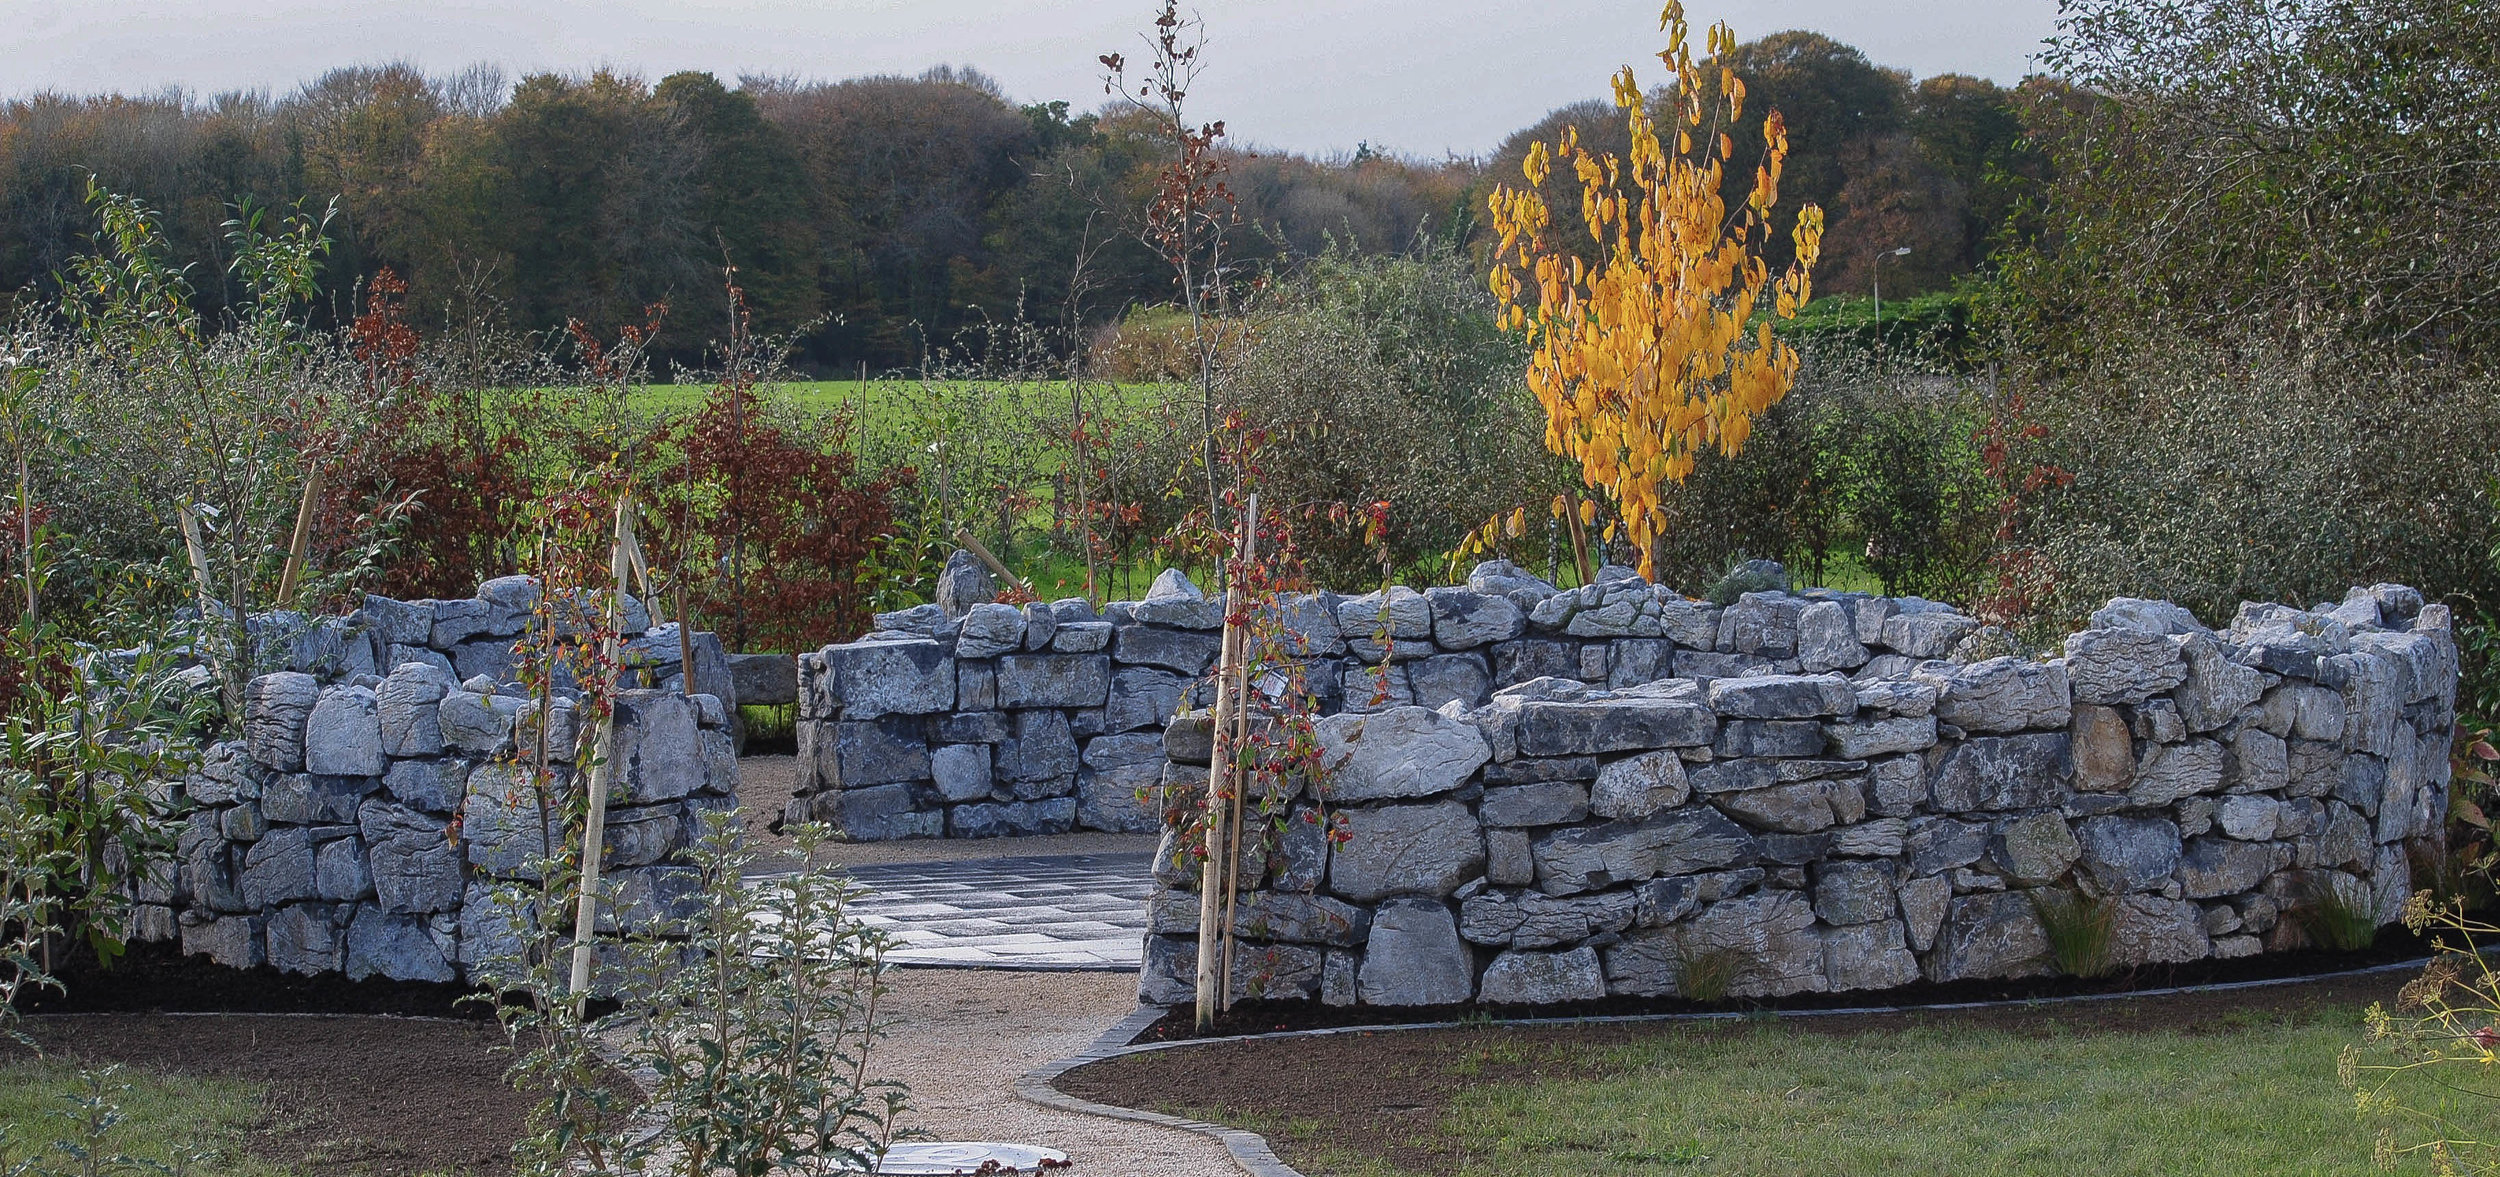 Finishing off the building of the natural stone wall feature.